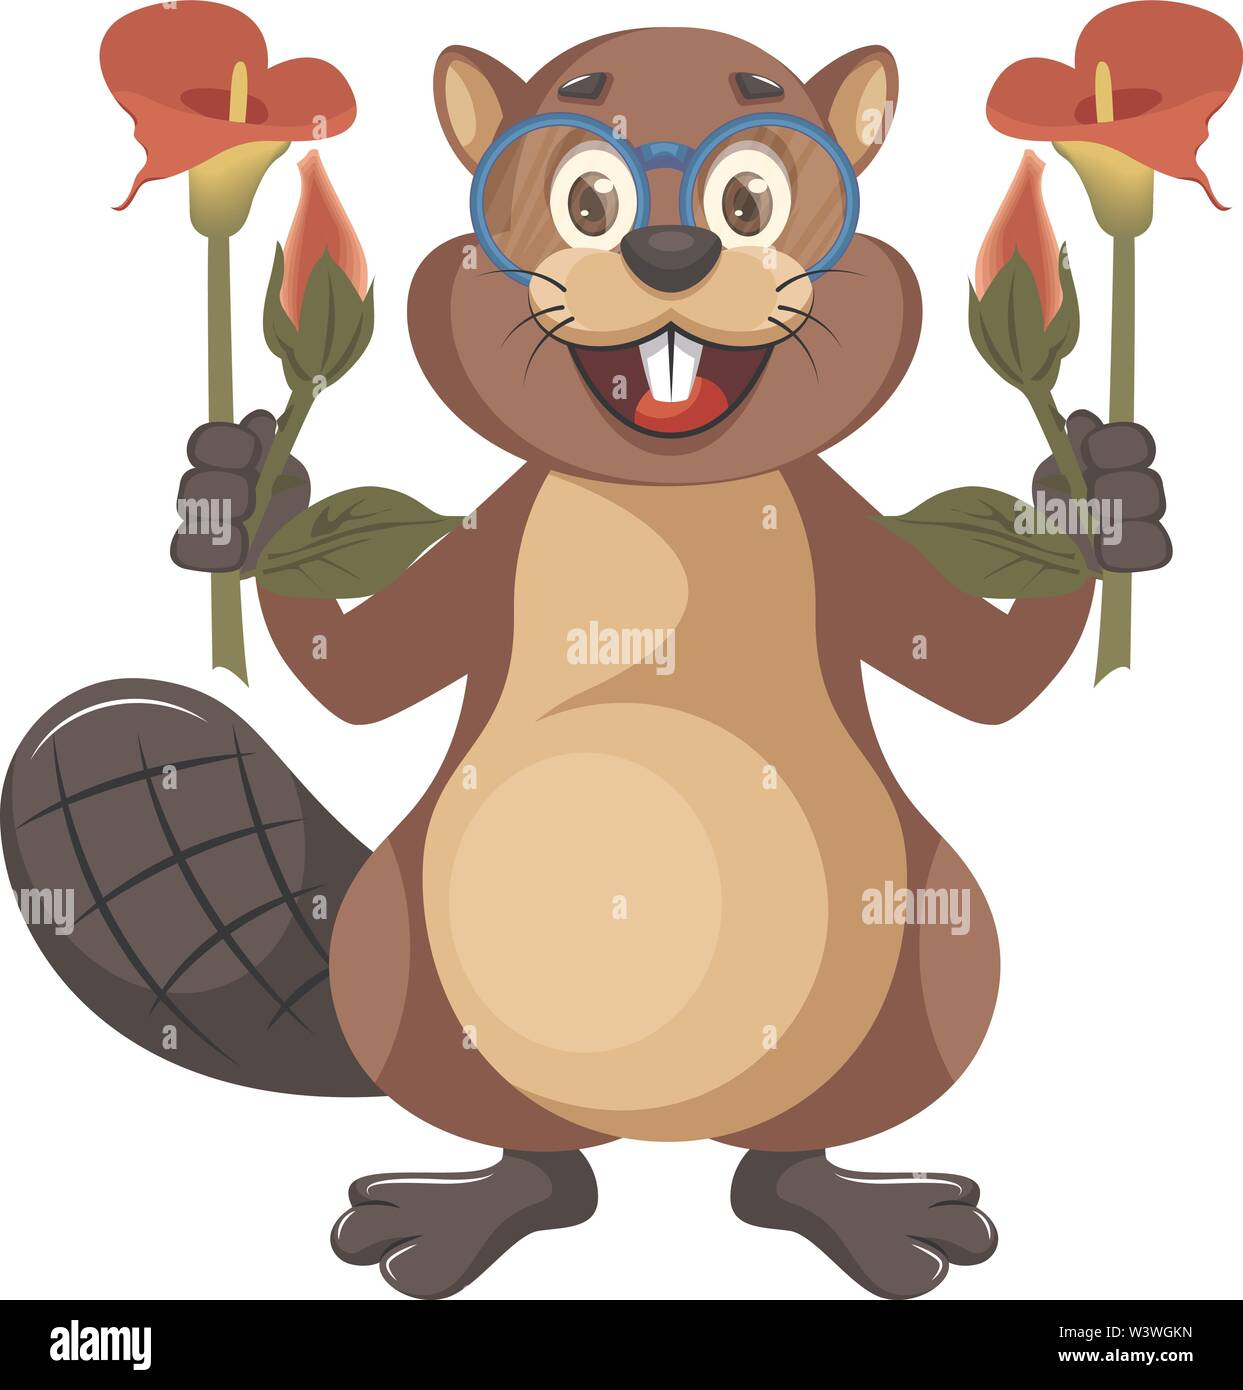 Beaver with flowers, illustration, vector on white background. - Stock Image